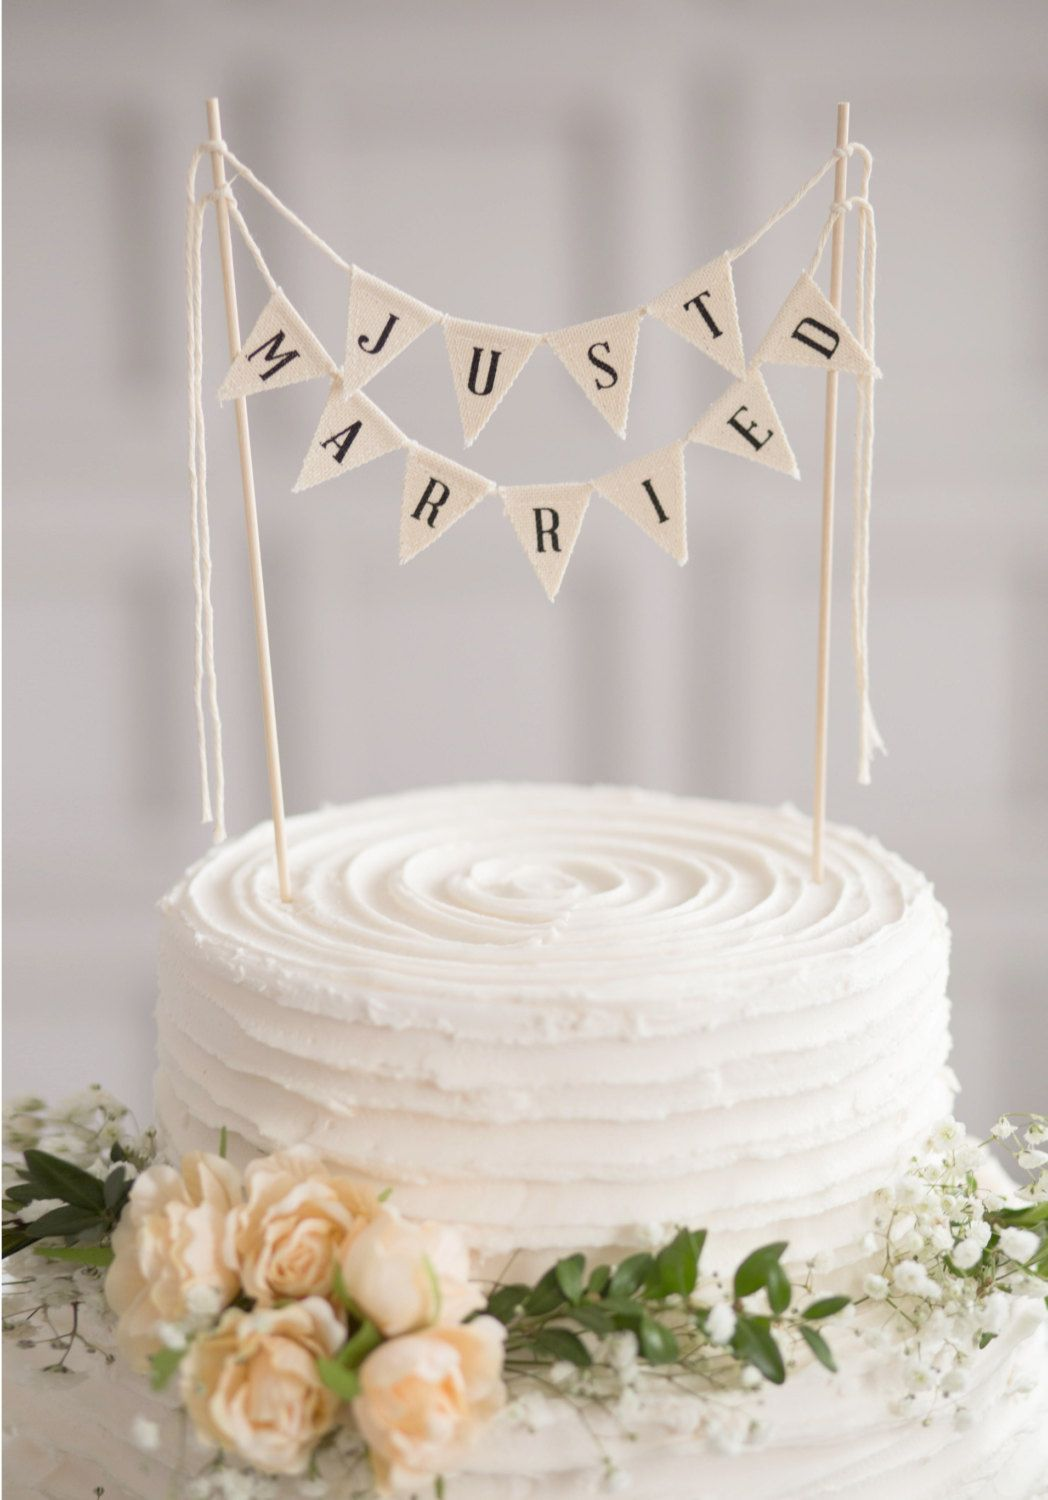 Just married wedding cake topper banner rustic wedding cake topper